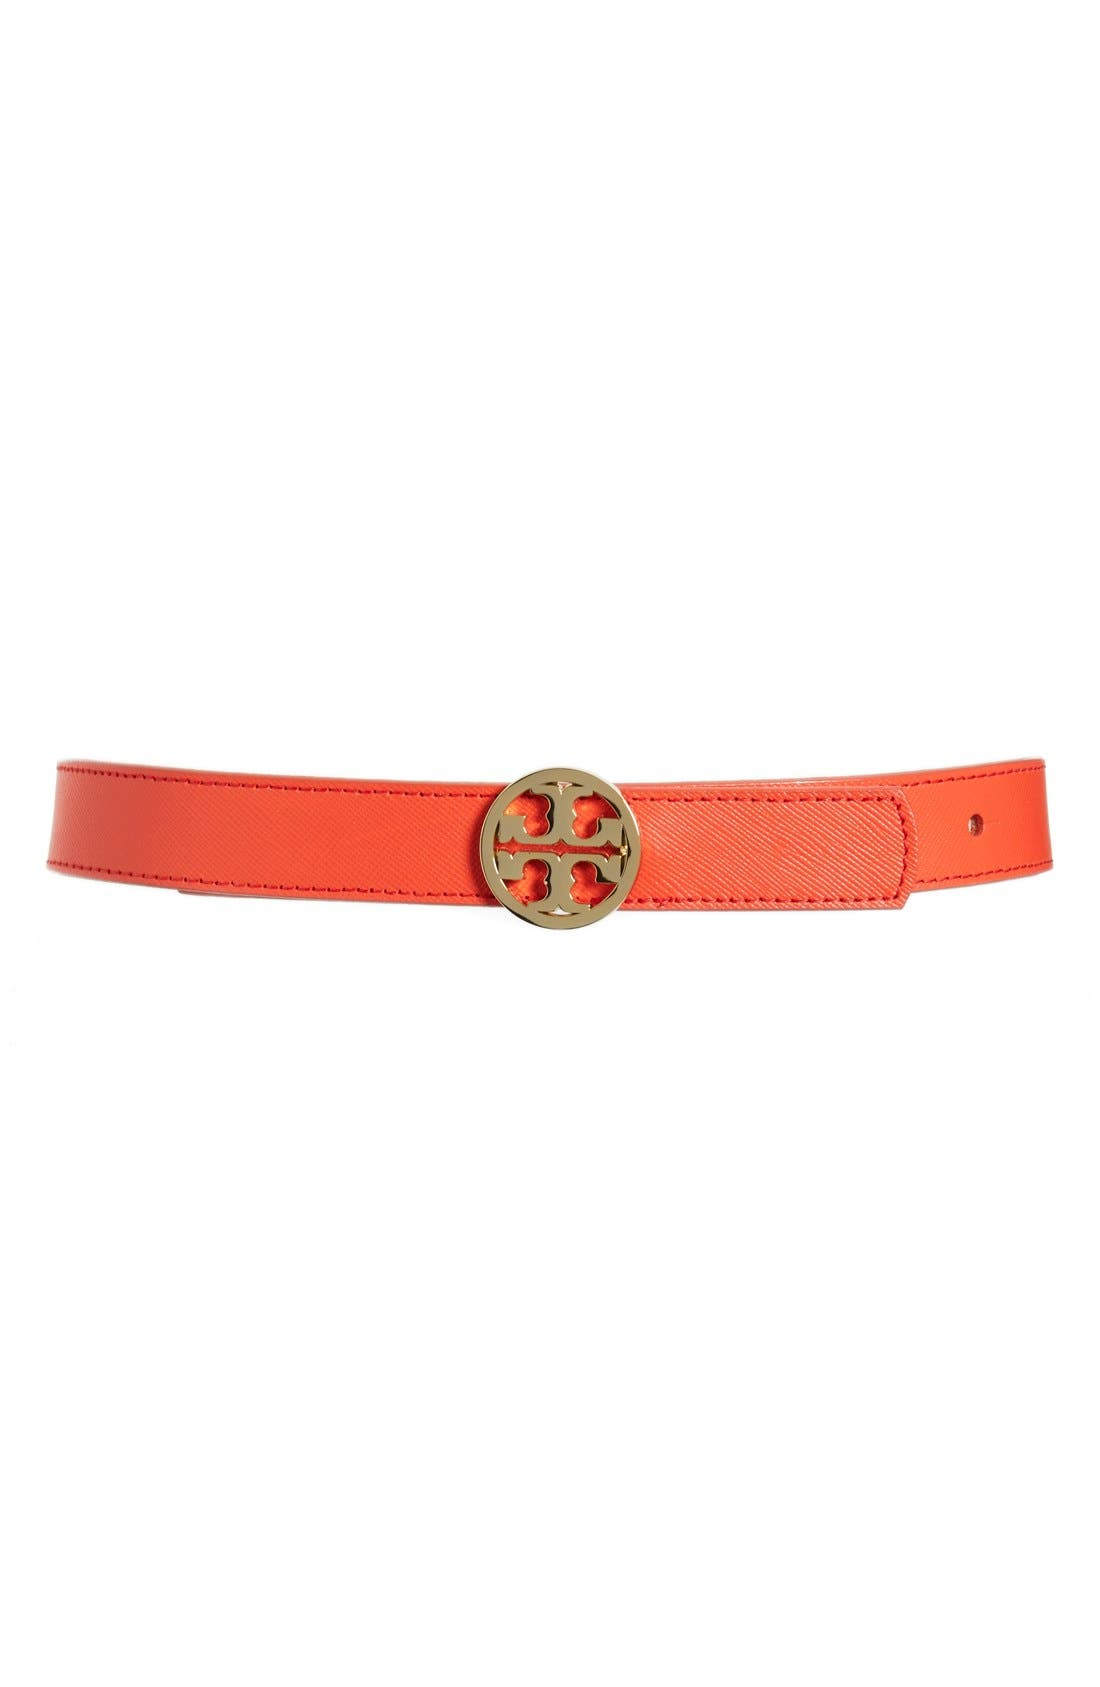 Alternate Image 1 Selected - Tory Burch 'Classic' Logo Reversible Saffiano Leather Belt